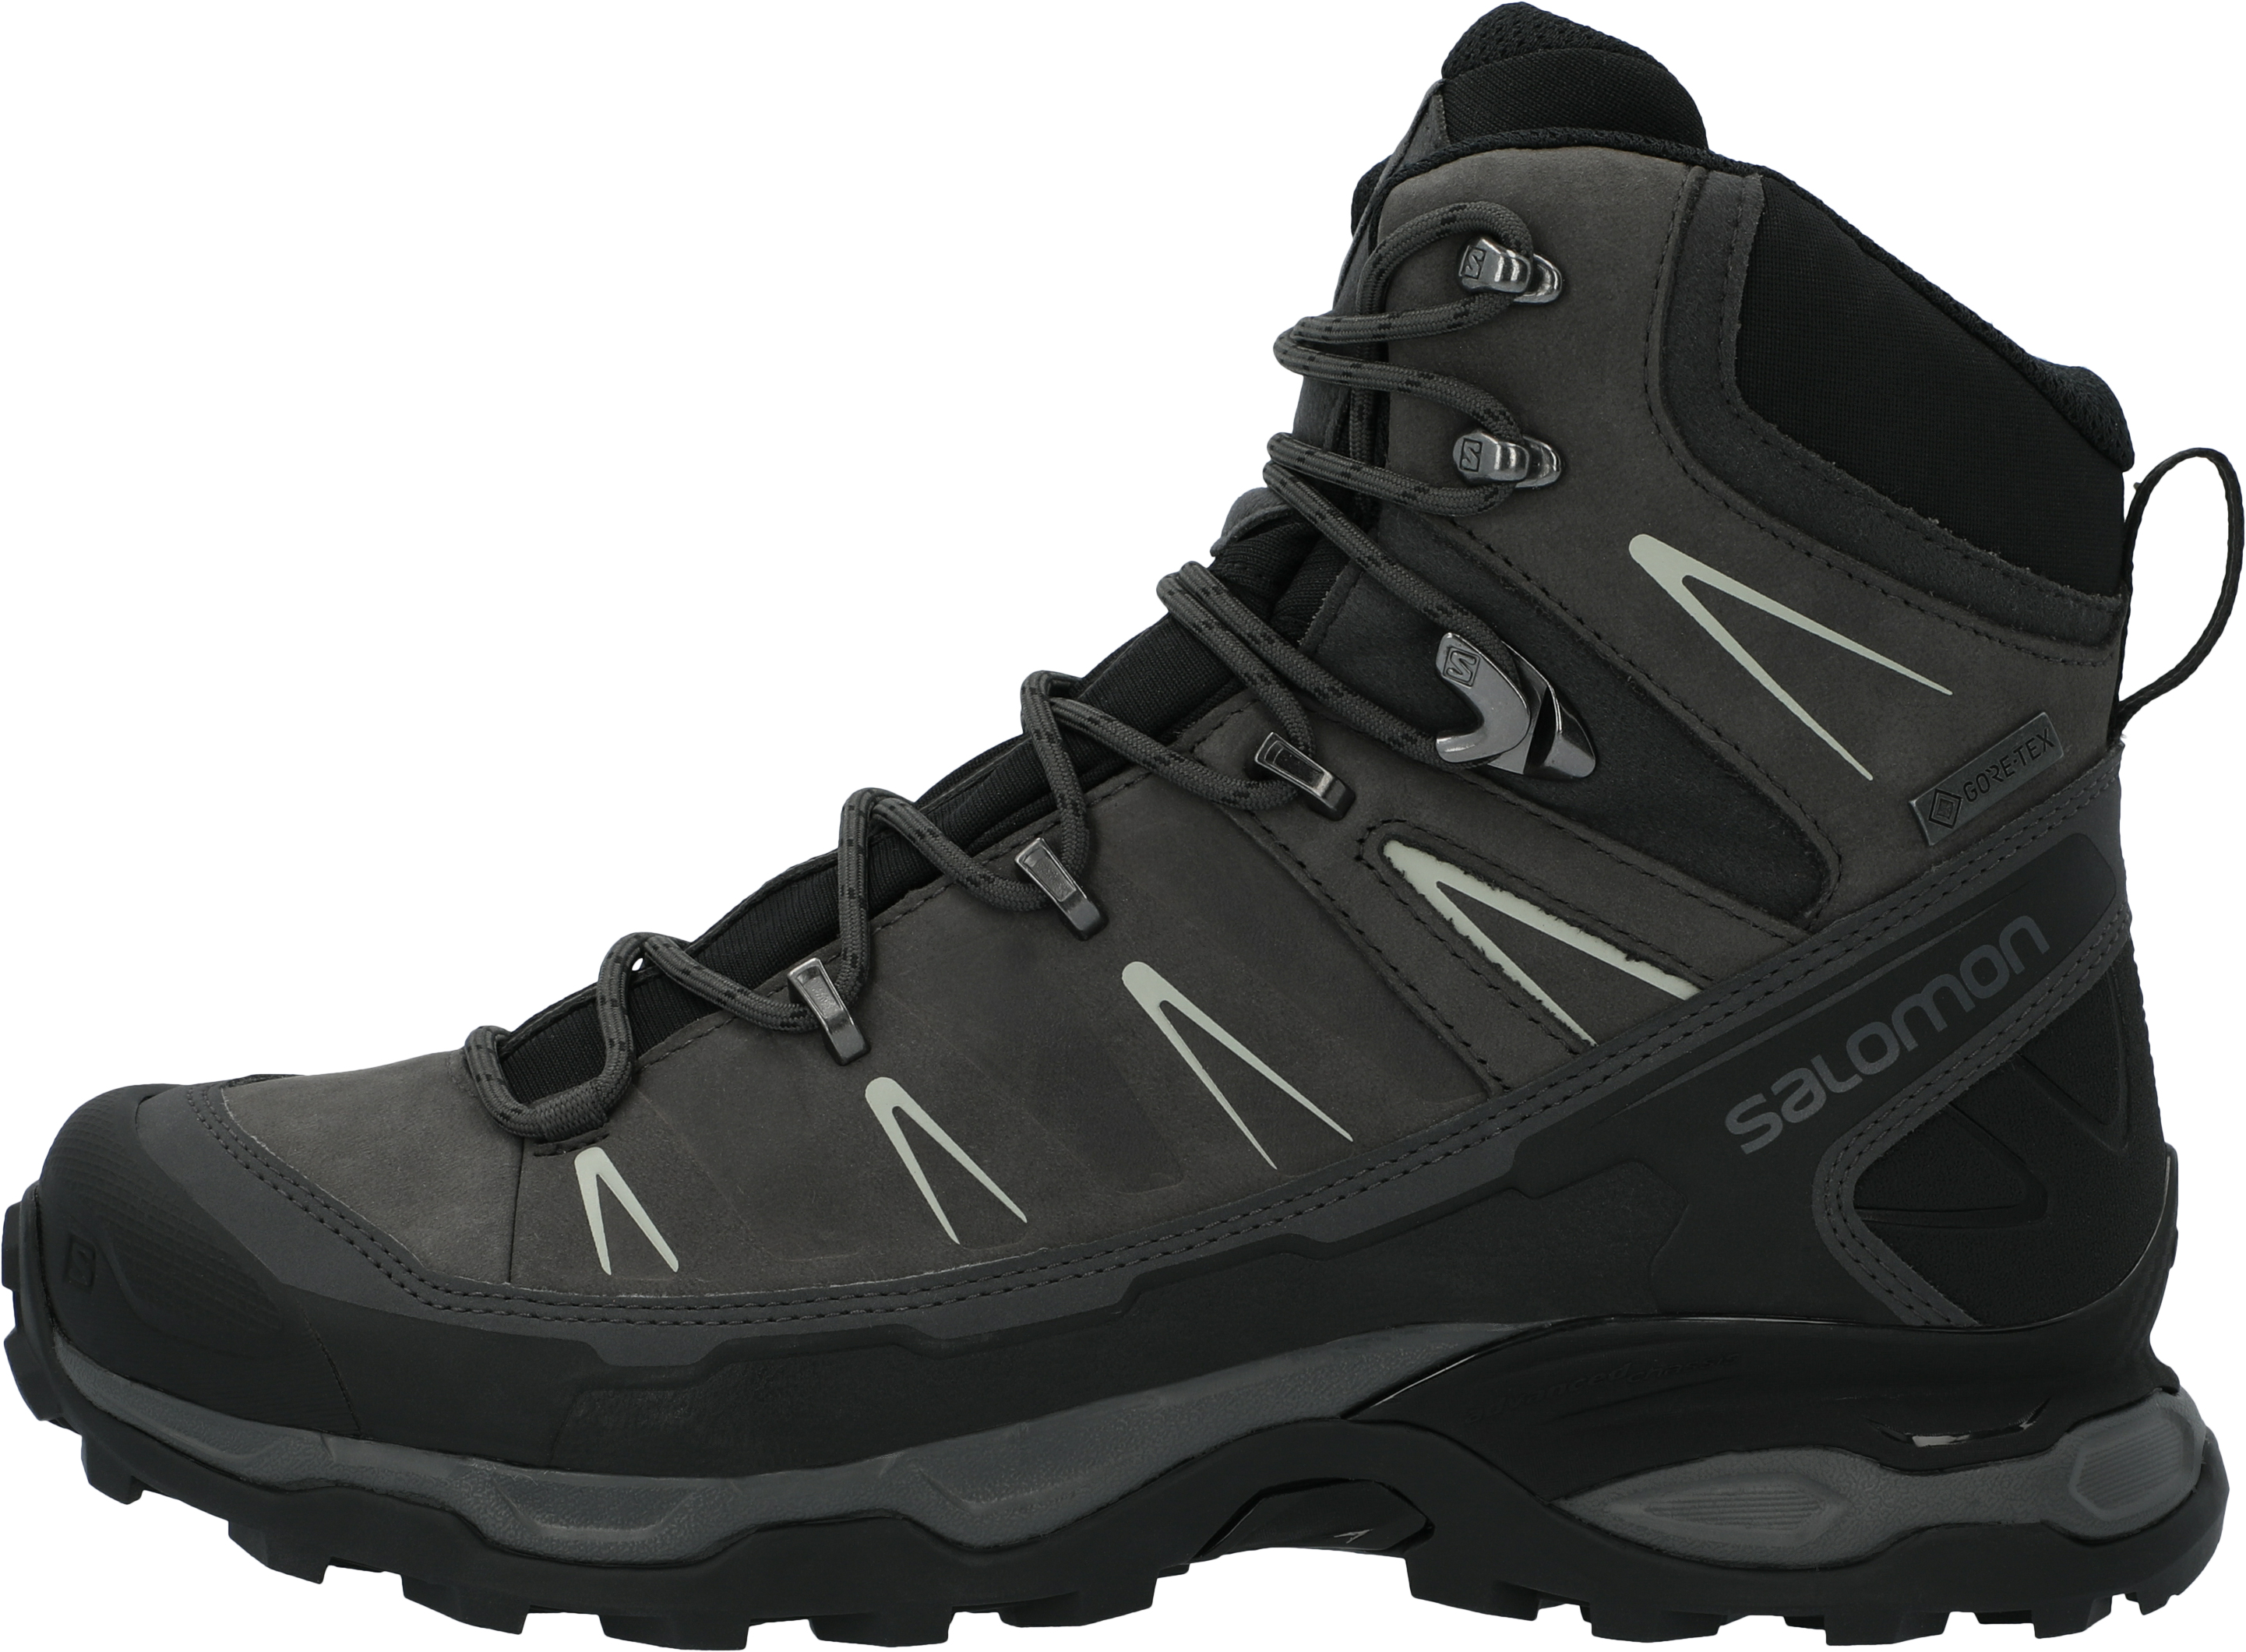 Salomon Ботинки женские Salomon X Ultra Trek, размер 39 salomon x drive 8 0 fs xt12 16 17